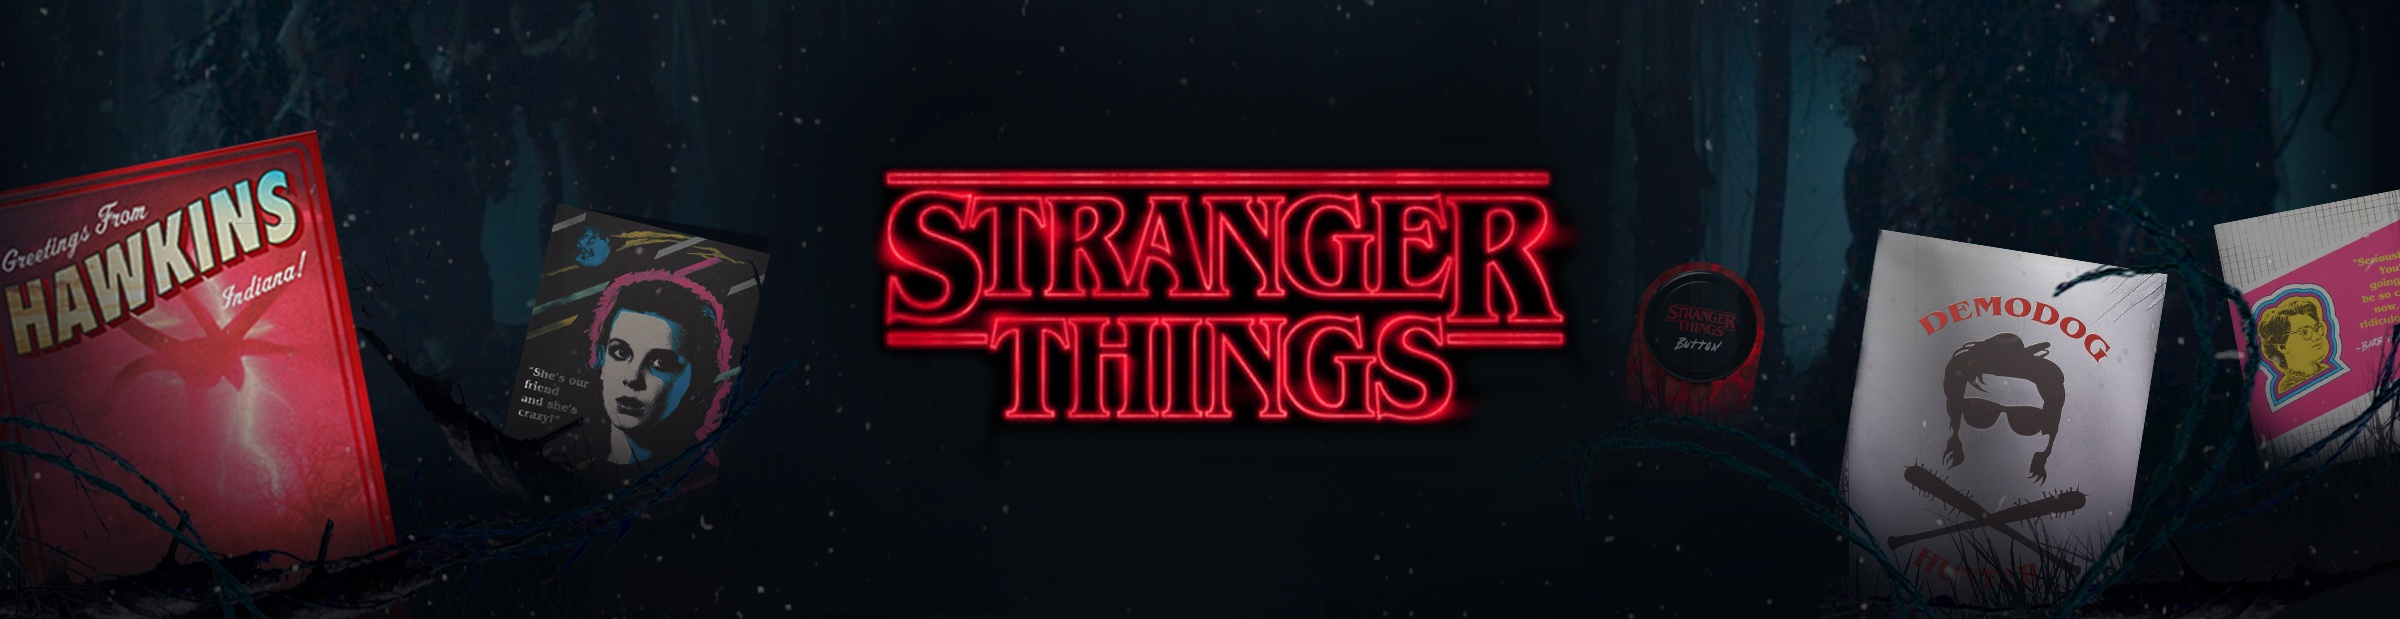 Stranger Things Product Banner